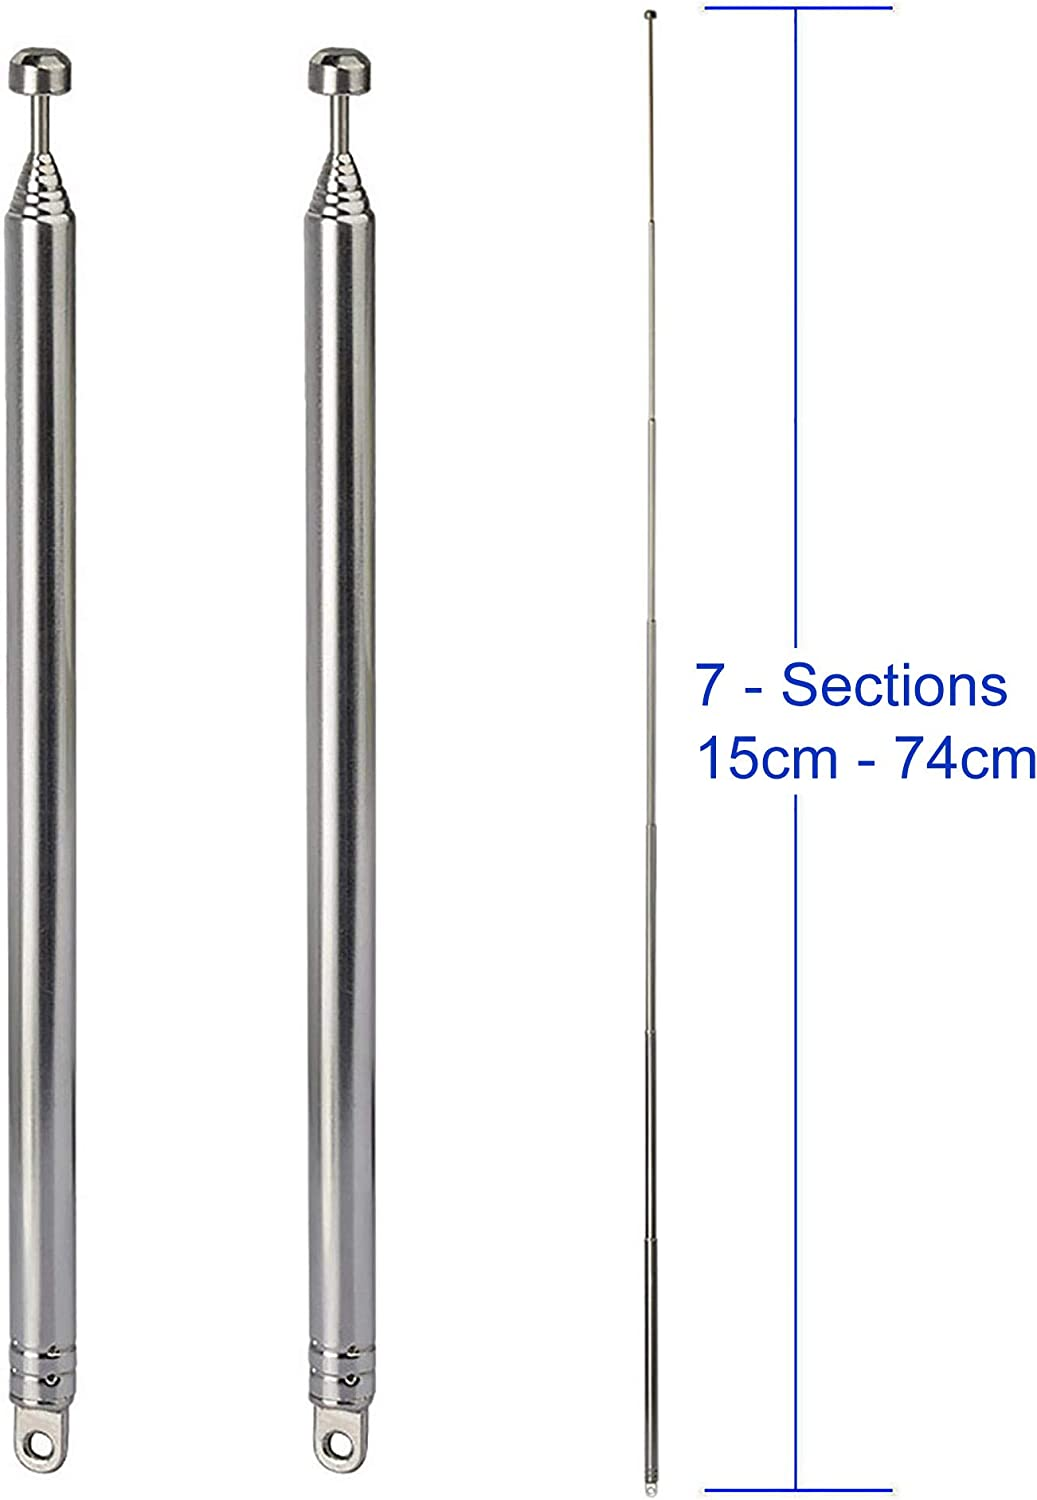 Bingfu 7-Sections Telescopic 74cm FM Antenna Replacement (2-Pack) Compatible with Indoor Portable Radio Bluetooth Stereo Receiver AV Audio Vedio Home Theater Receiver Power Amplifier System Tuner